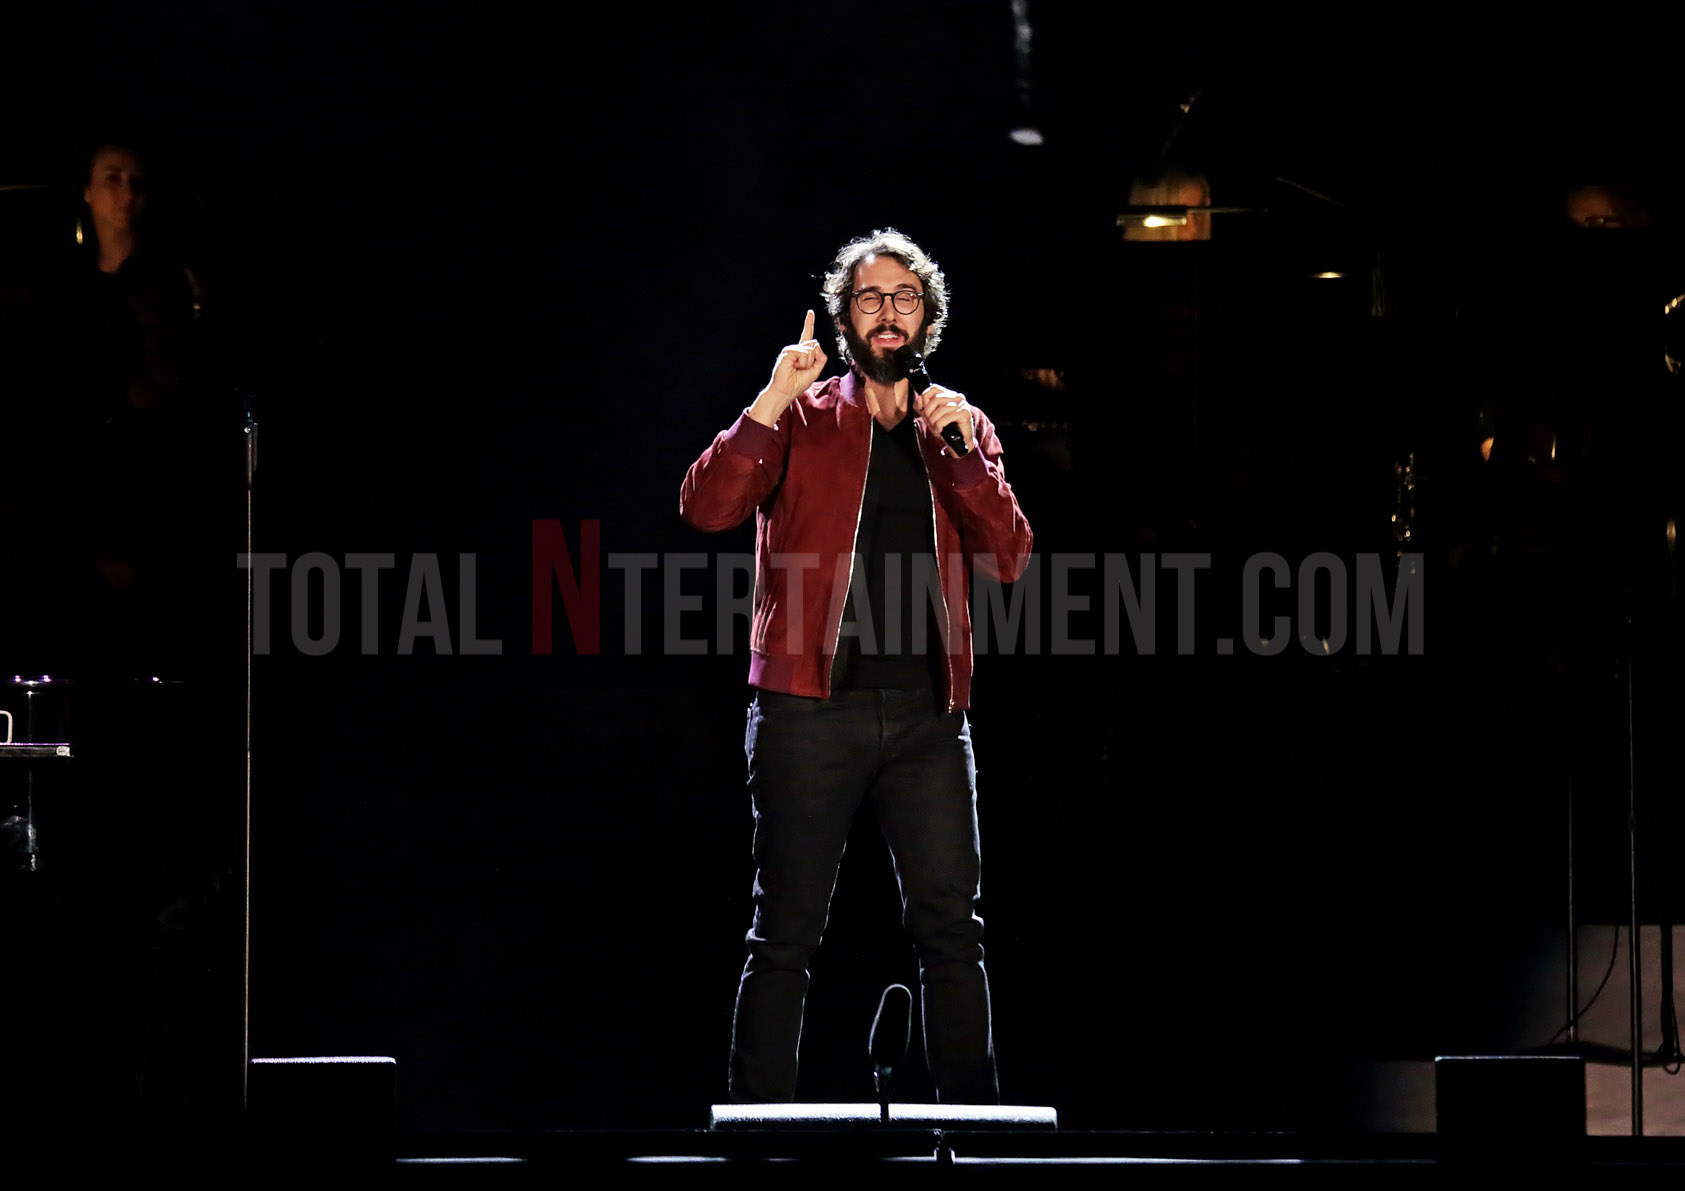 Josh Groban captivates the crowd in Manchester